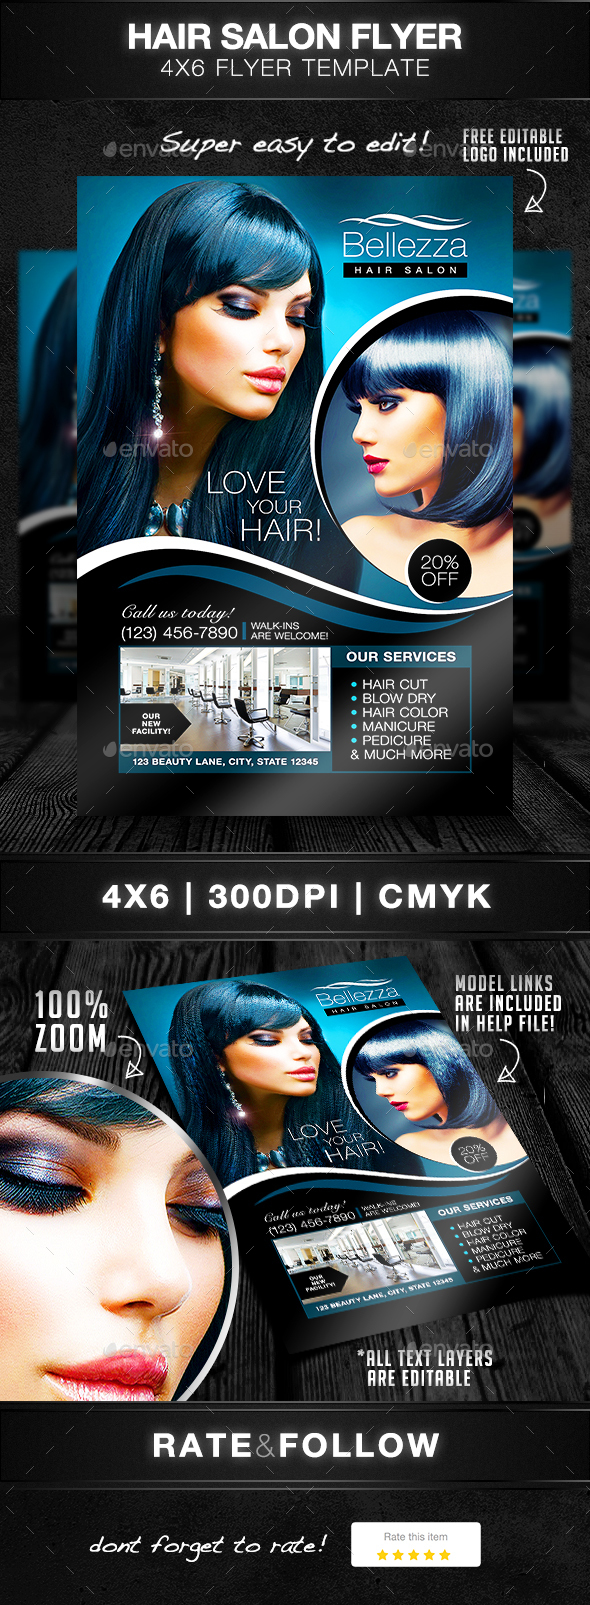 Hair Salon Graphics Designs Templates From Graphicriver